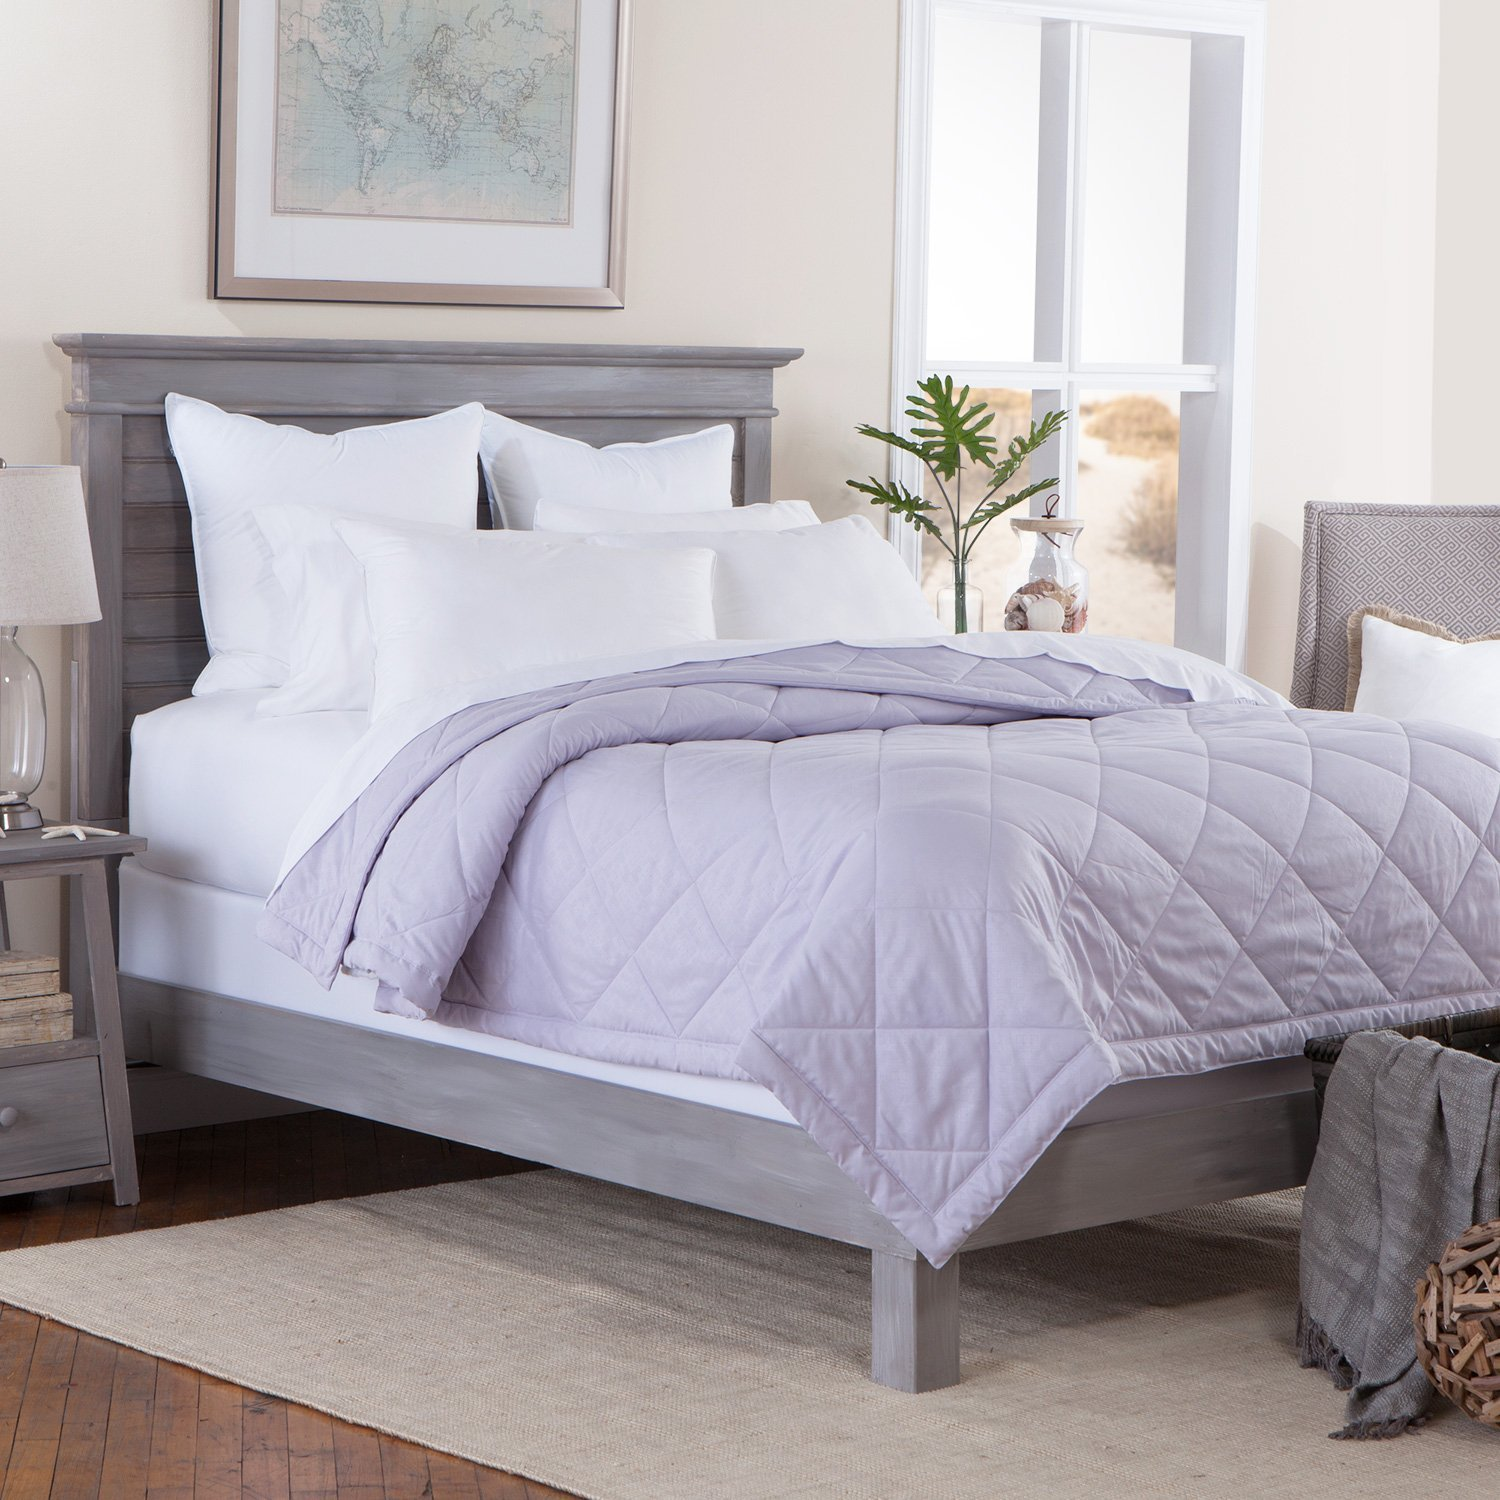 lightweight king bedspread floral get quotations tommy bahama bedding monogrammed lilac blanket lightweight microfiber 110 cheap oversized king quilts find quilts deals on